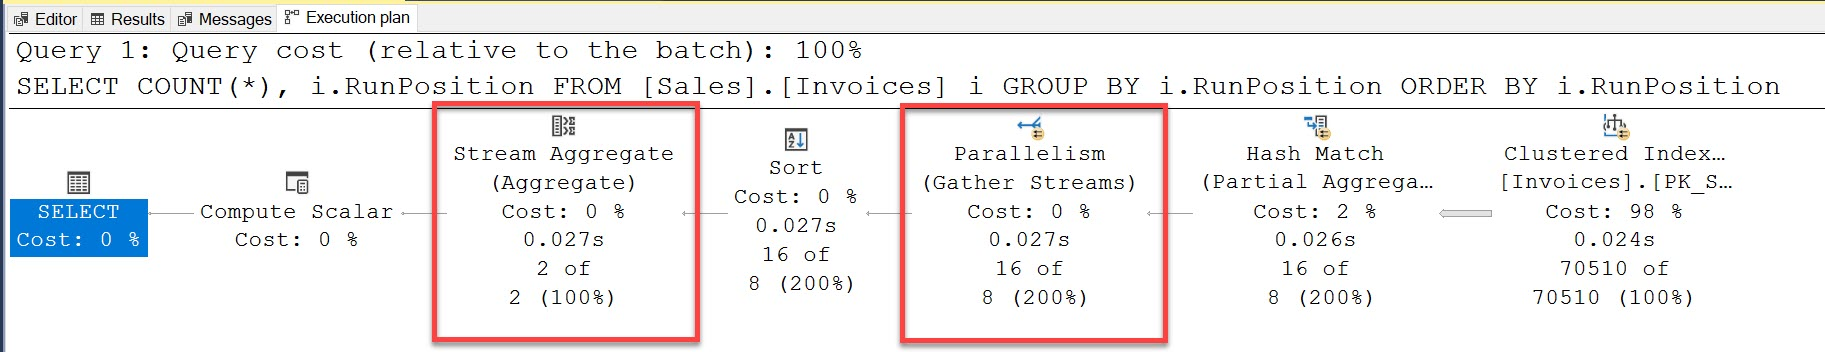 SQL SERVER - Is Stream Aggregate is Same as Gather Streams of Parallelism? operators